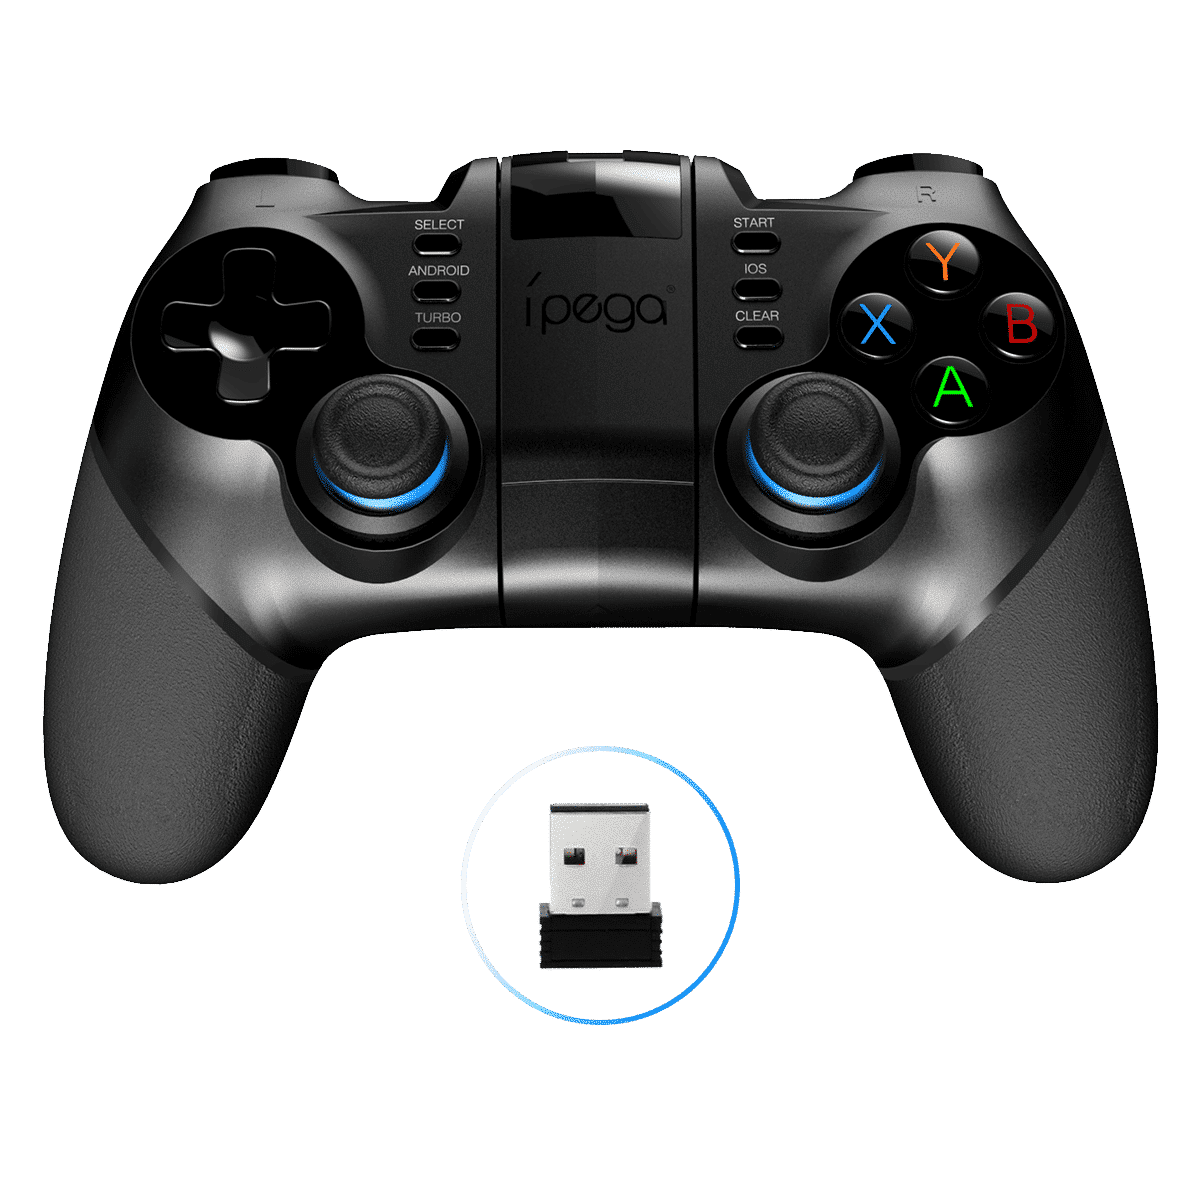 iPega PG-9156 Bluetooth and 2.4Ghz wireless Gamepad for Android, Windows and iOS - 2.4Ghz dongle